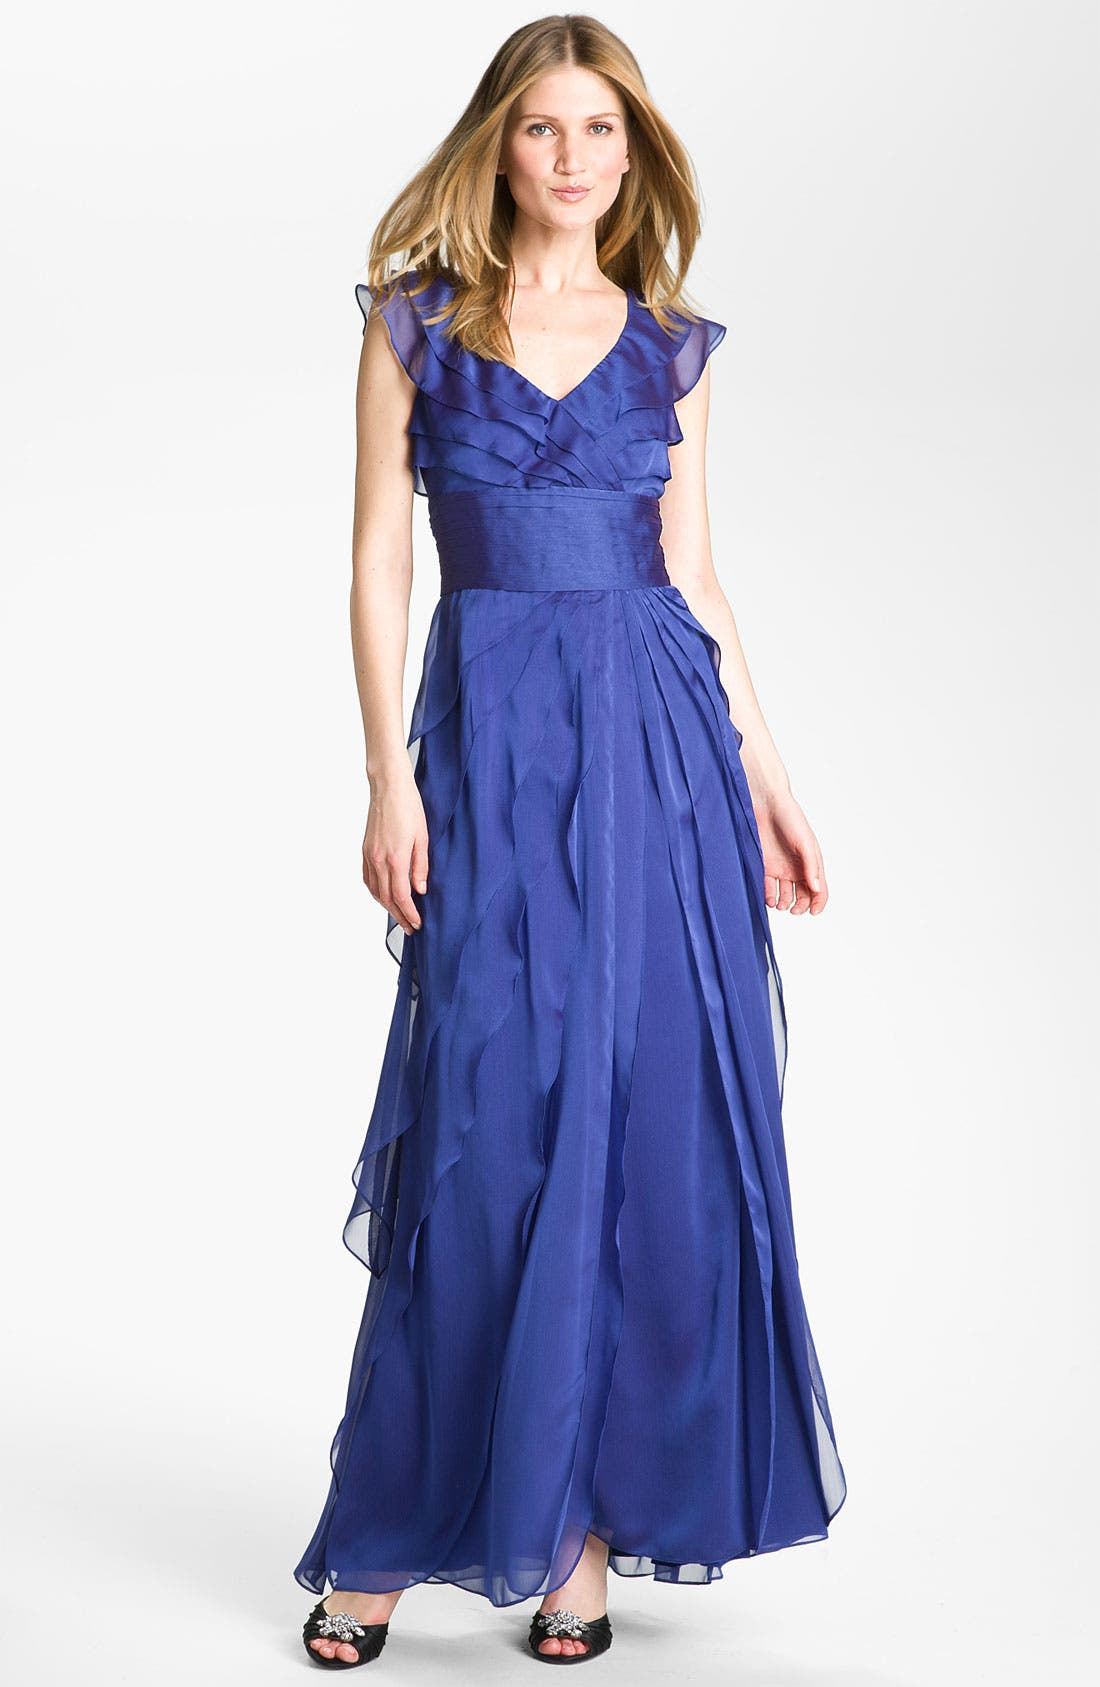 Alternate Image 1 Selected - Adrianna Papell Tiered Chiffon Gown (Petite)